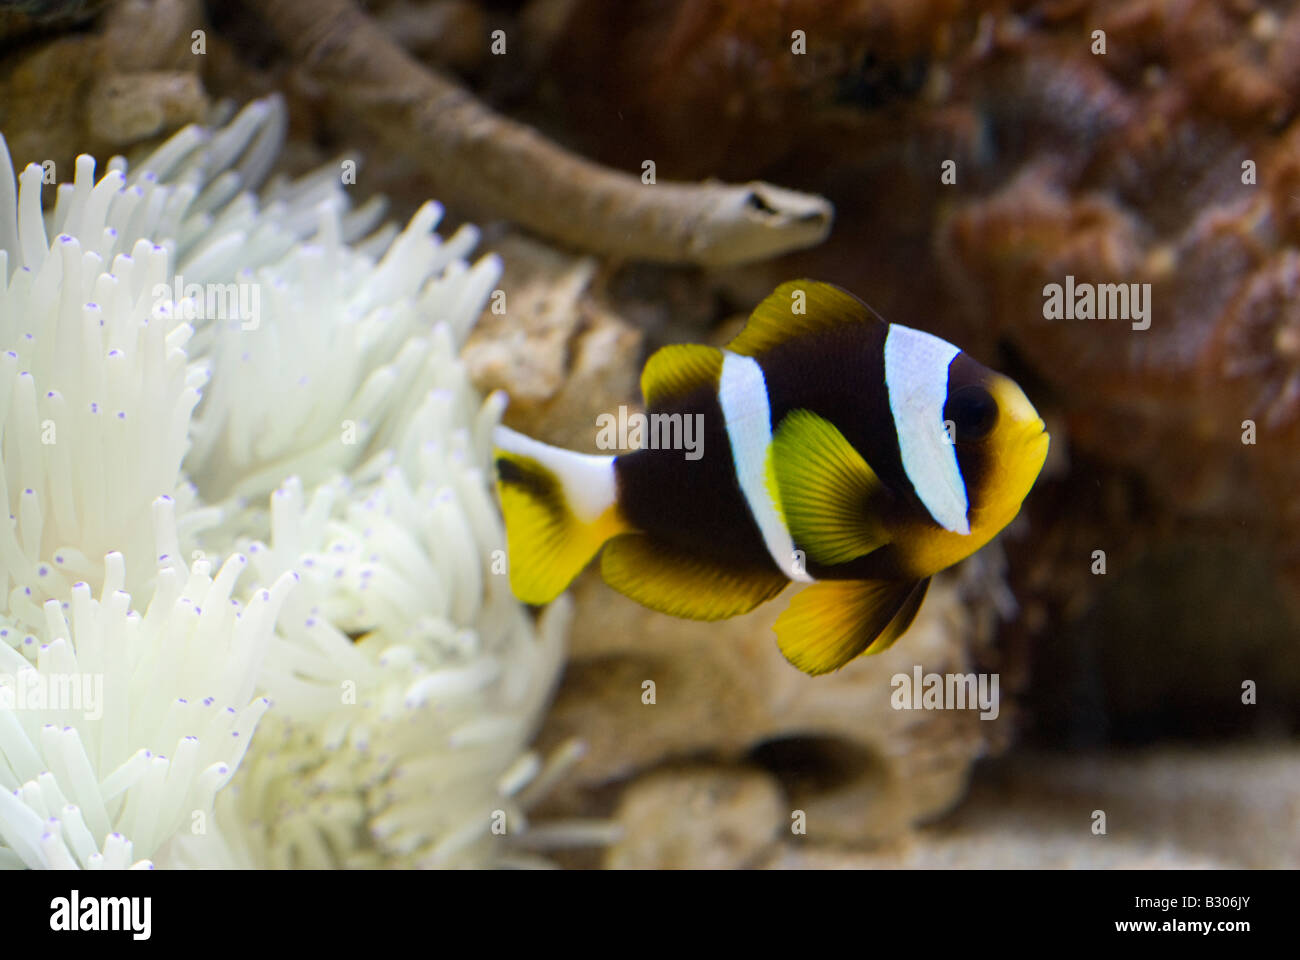 Clown fish, Amphiprion clarckii, Indo-pacific Ocean - Stock Image